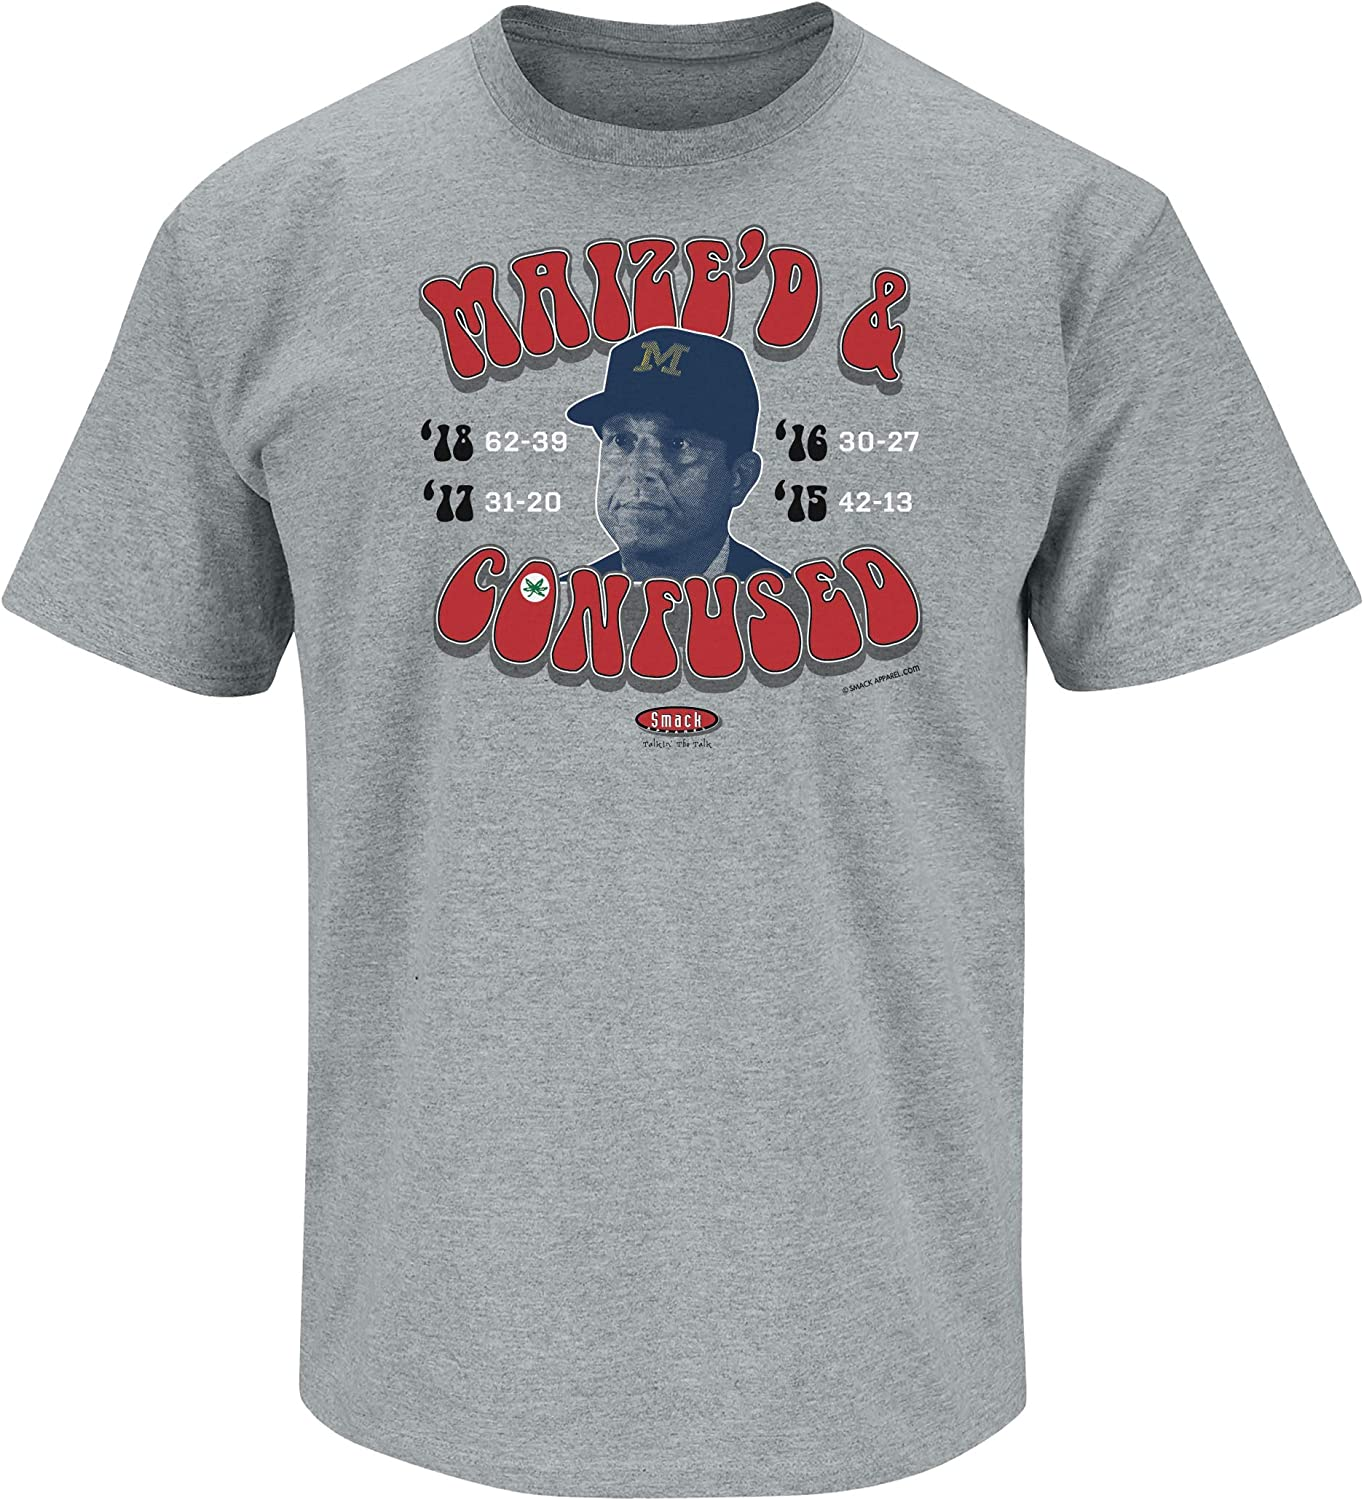 Maized /& Confused Grey T-Shirt Smack Apparel Ohio State Football Fans Sm-5X